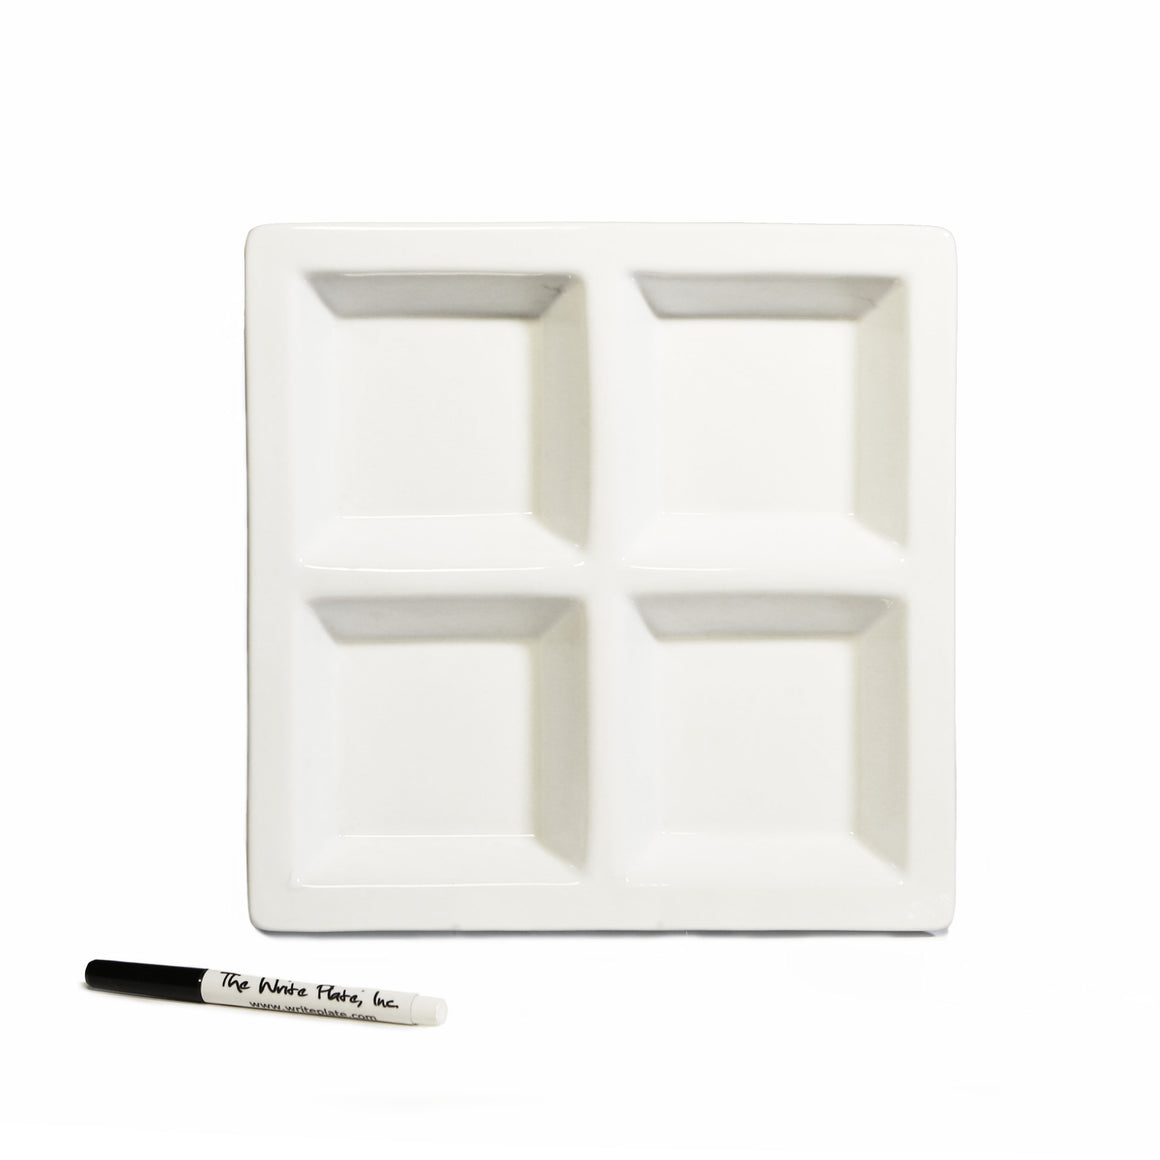 "Tradition Tray, 12"" Square Ceramic Tray"